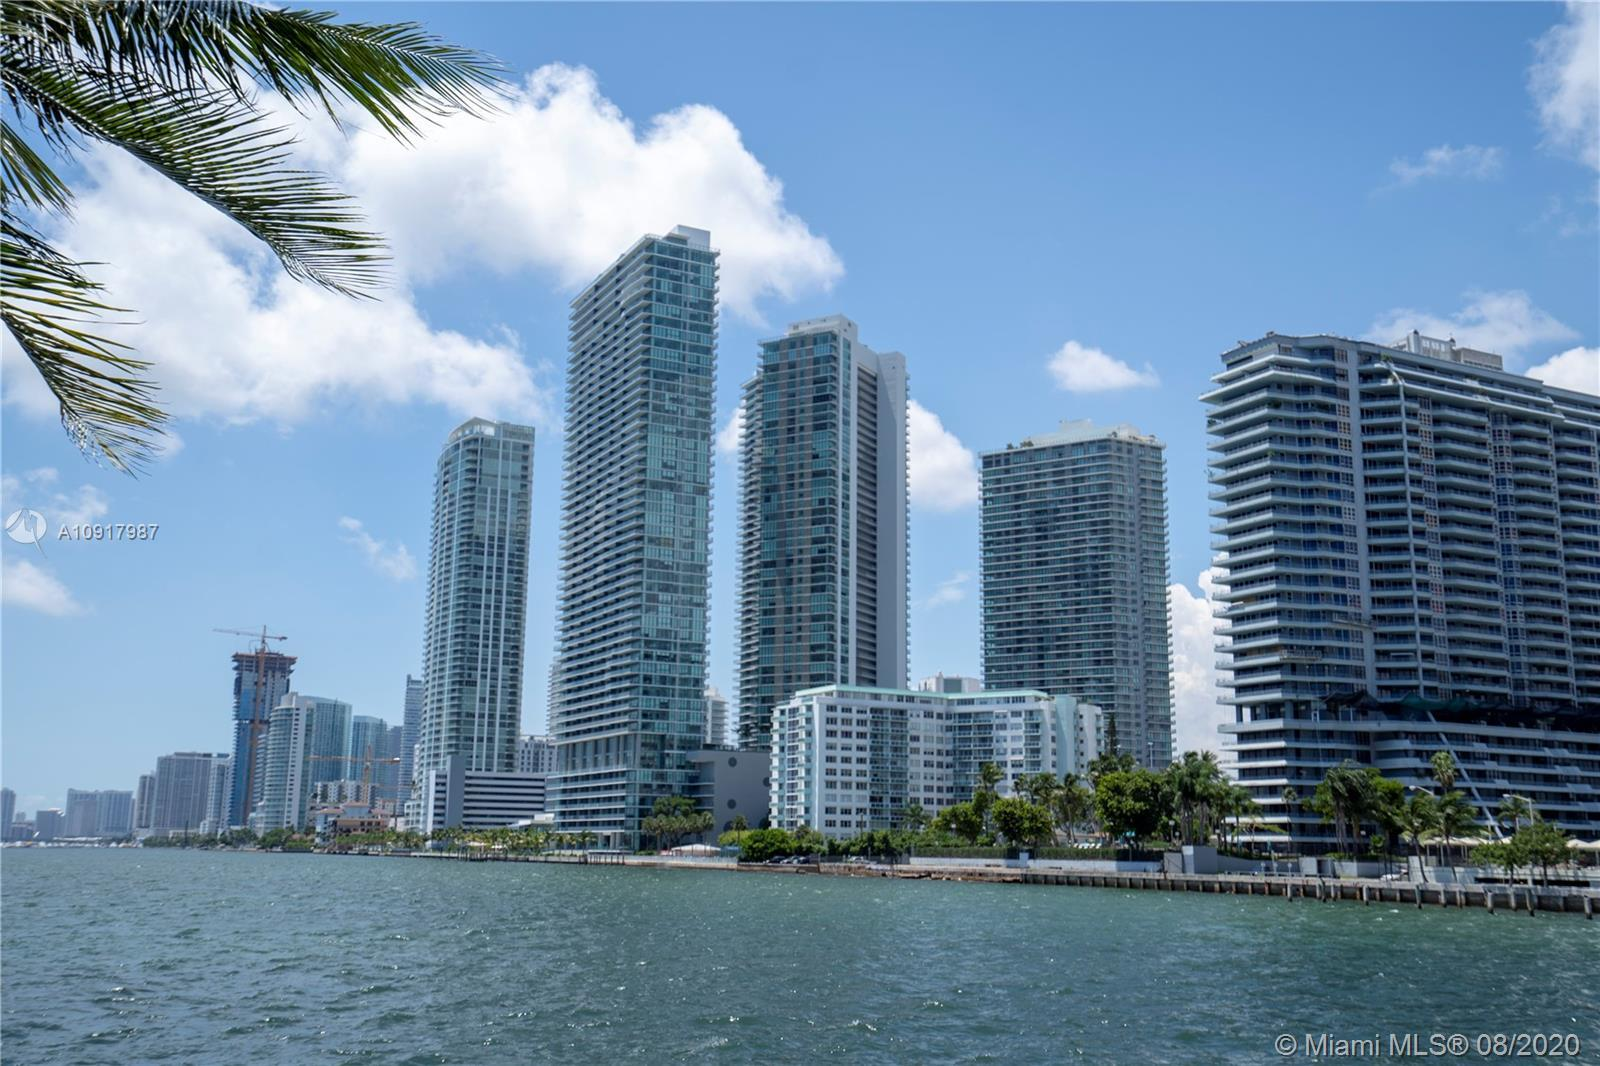 Luxury condo with breathtaking views at One Paraiso. This brand-new condo has unobstructed views of